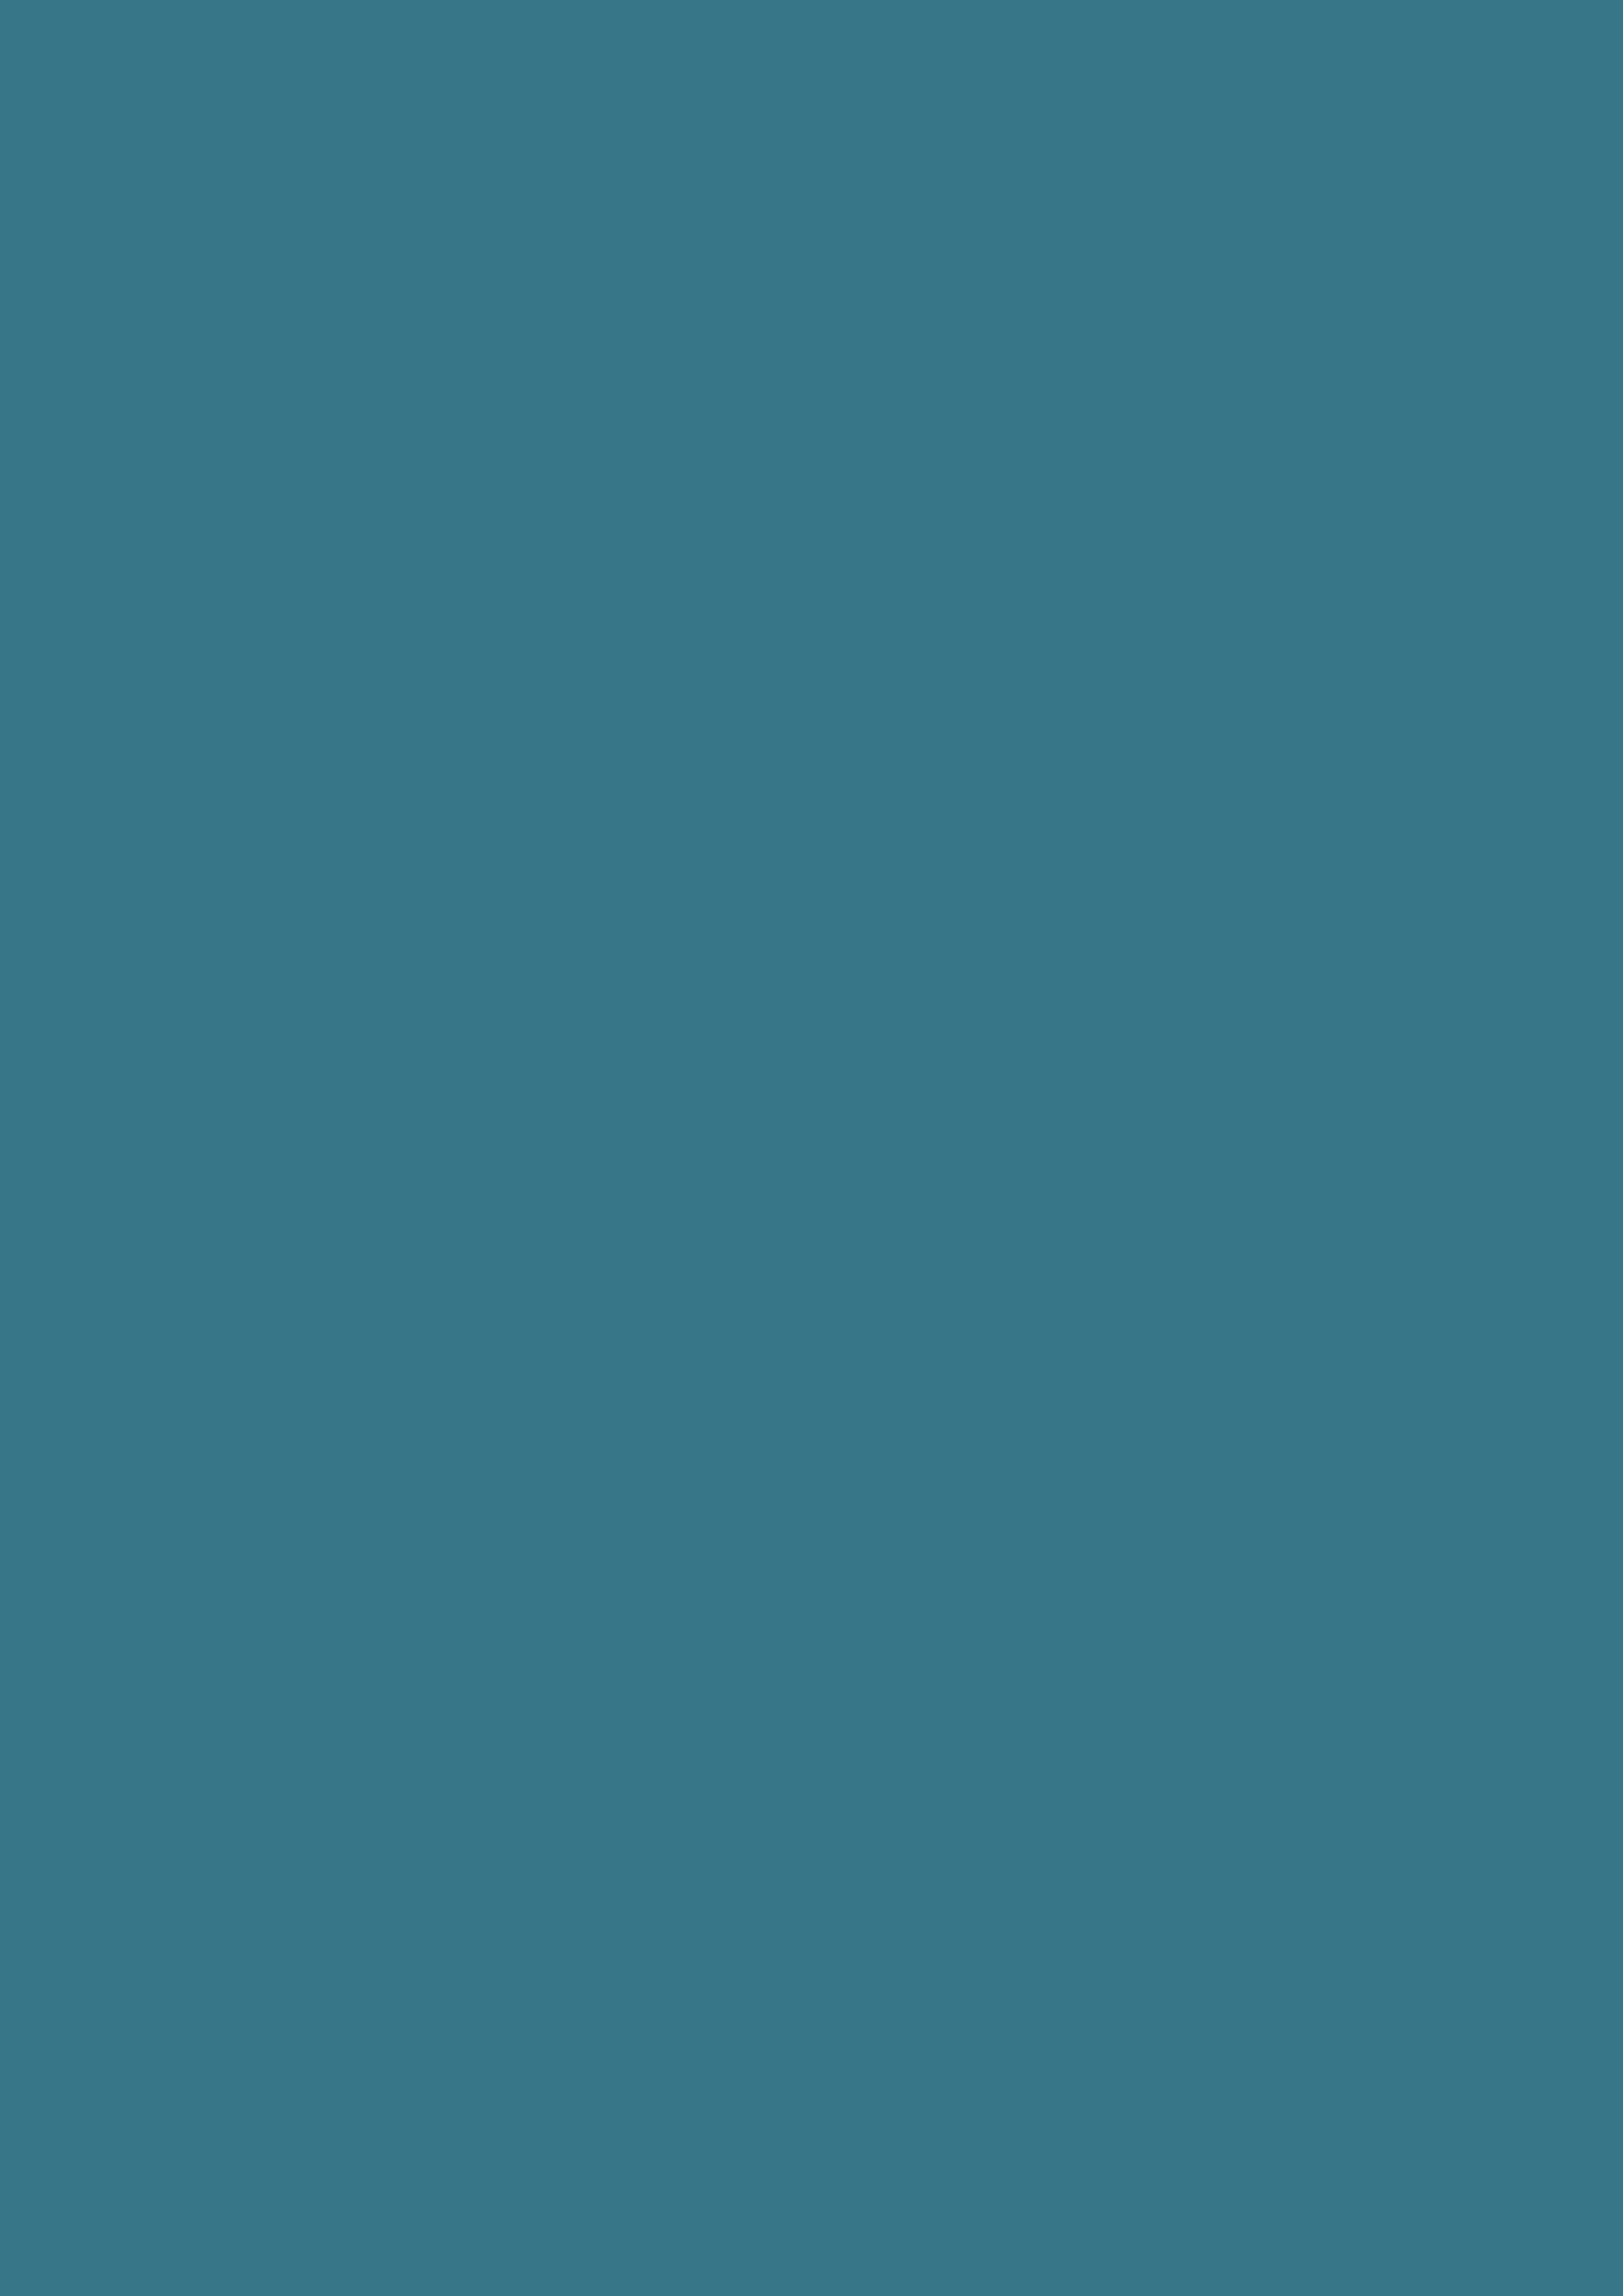 2480x3508 Teal Blue Solid Color Background